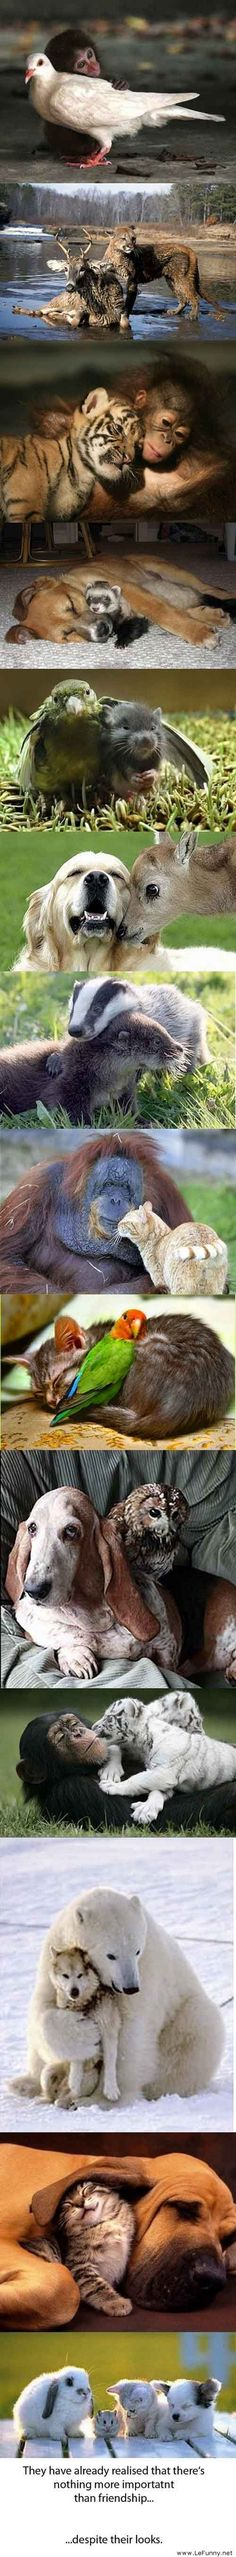 unusual animal friendships